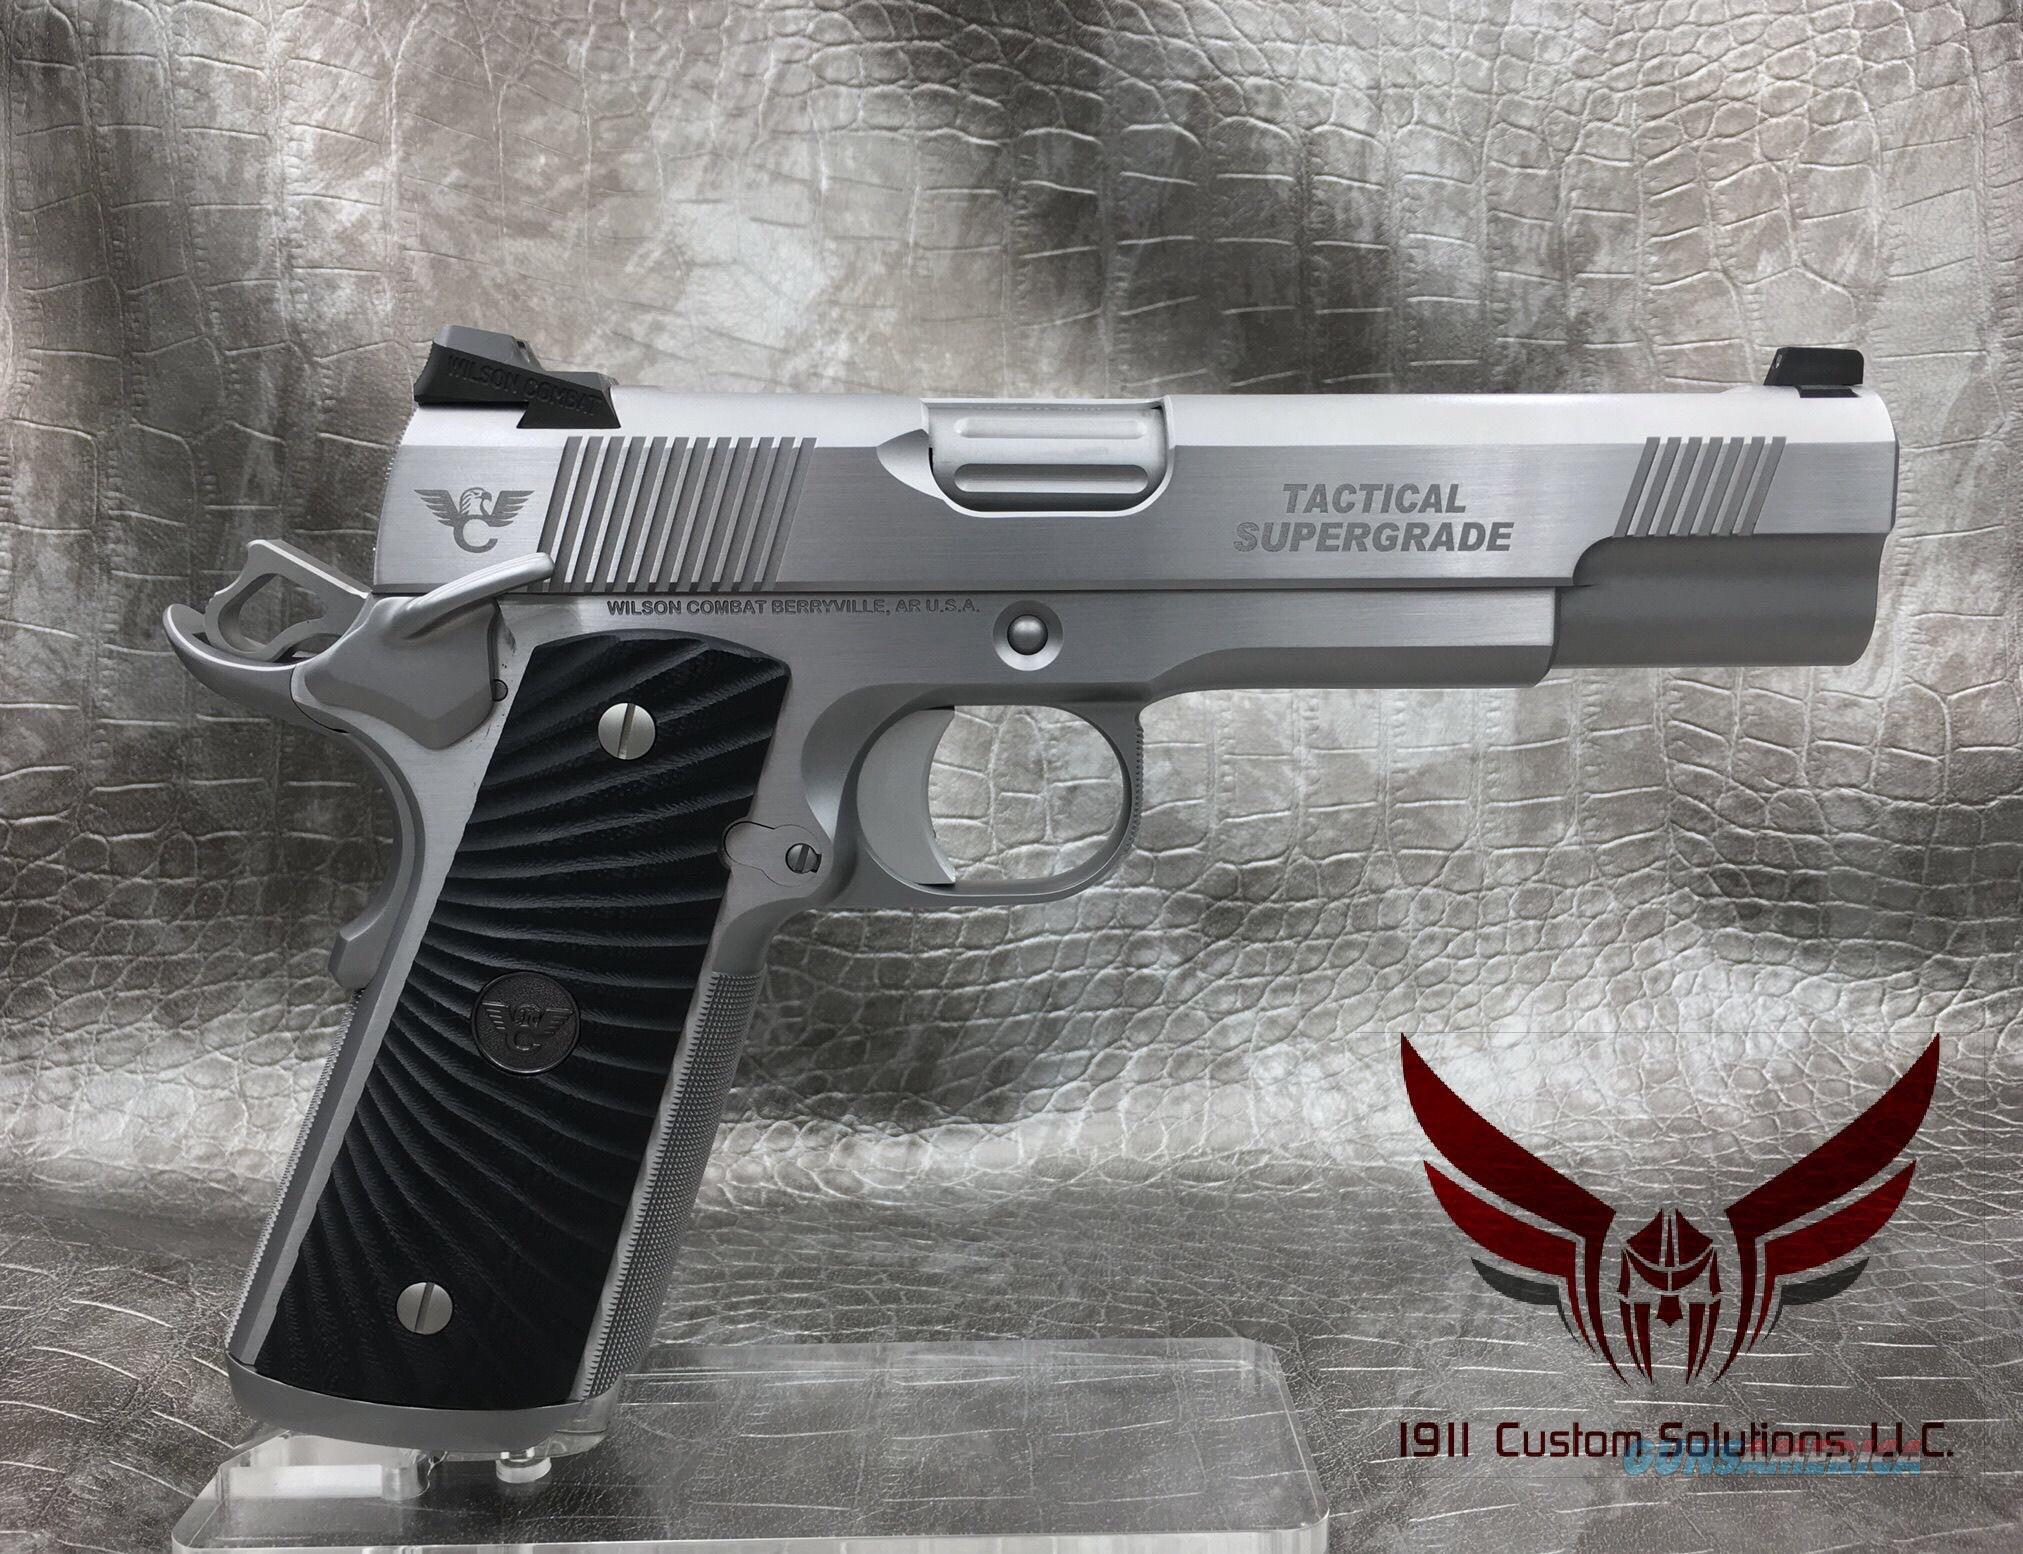 Wilson Combat Tactical Supergrade- All Stainless Steel with Matte Bead Blast & Polished Sides   Guns > Pistols > Wilson Combat Pistols